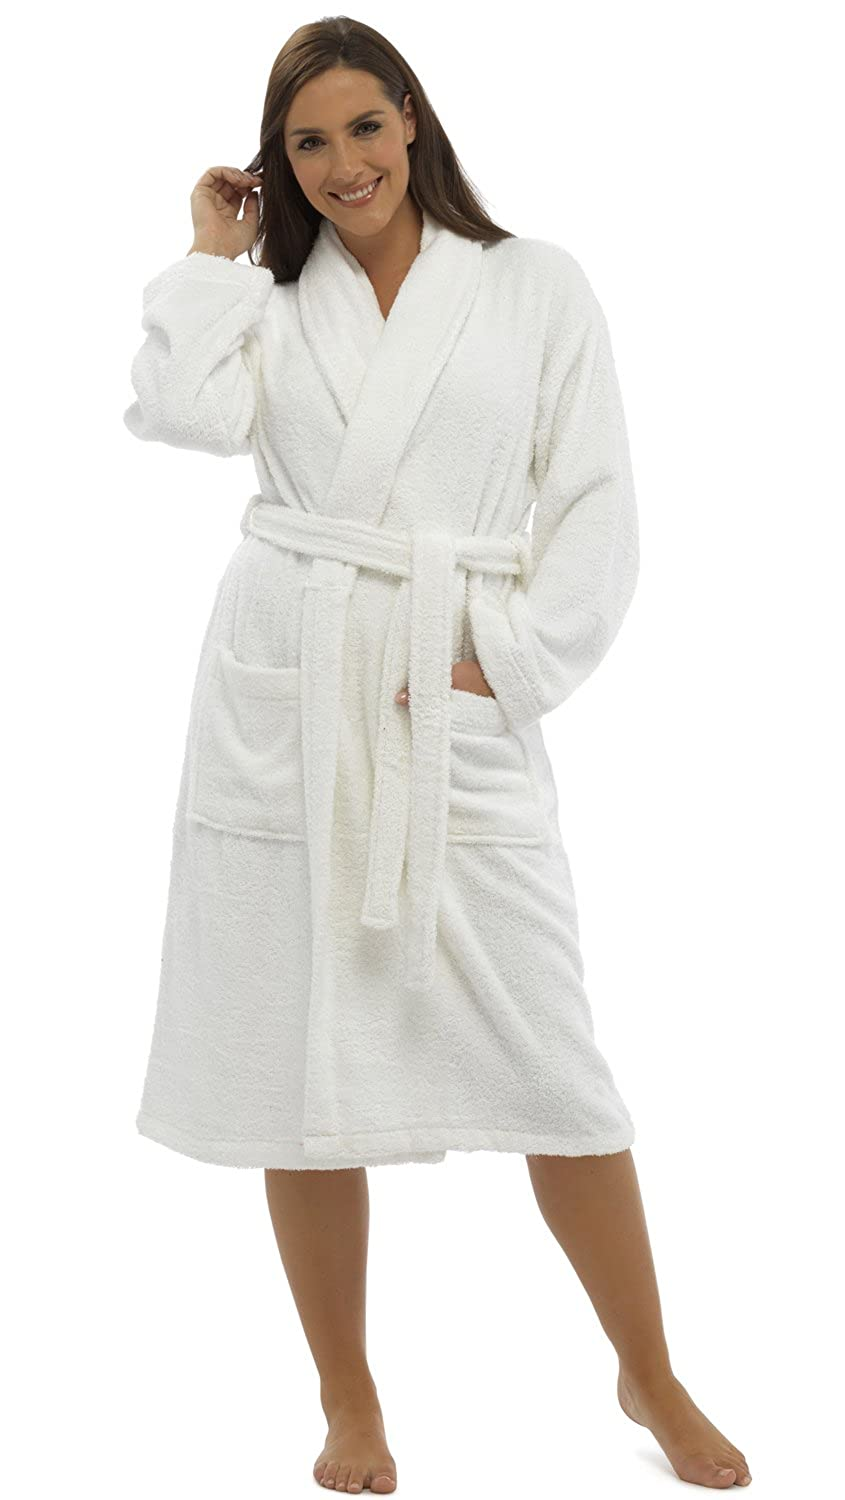 Womens/Ladies Nightwear/Sleepwear Long Sleeve Towelling Bath Robe/Dressing Gown, Various Colours & Sizes